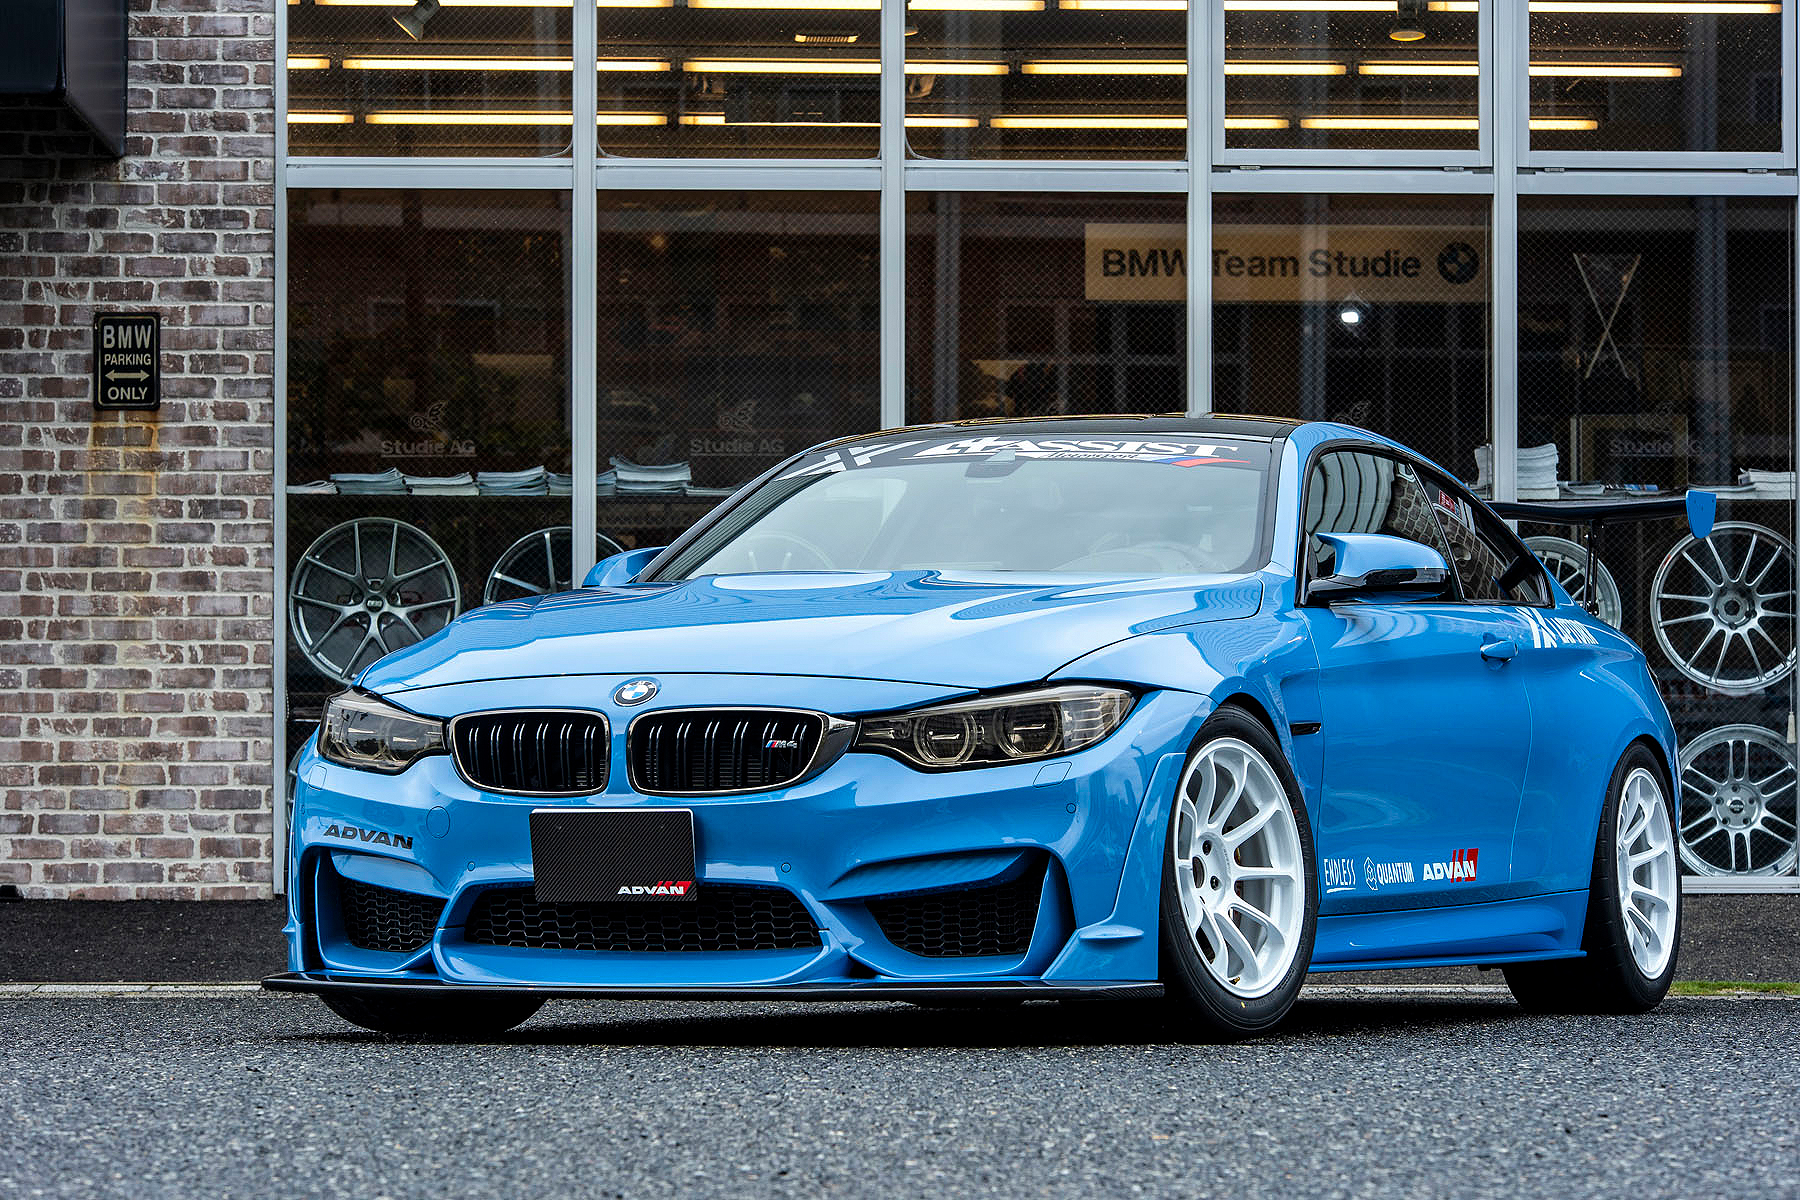 BMW M4 [F82] 2014y / ASSIST [SHOP DEMO-CAR]